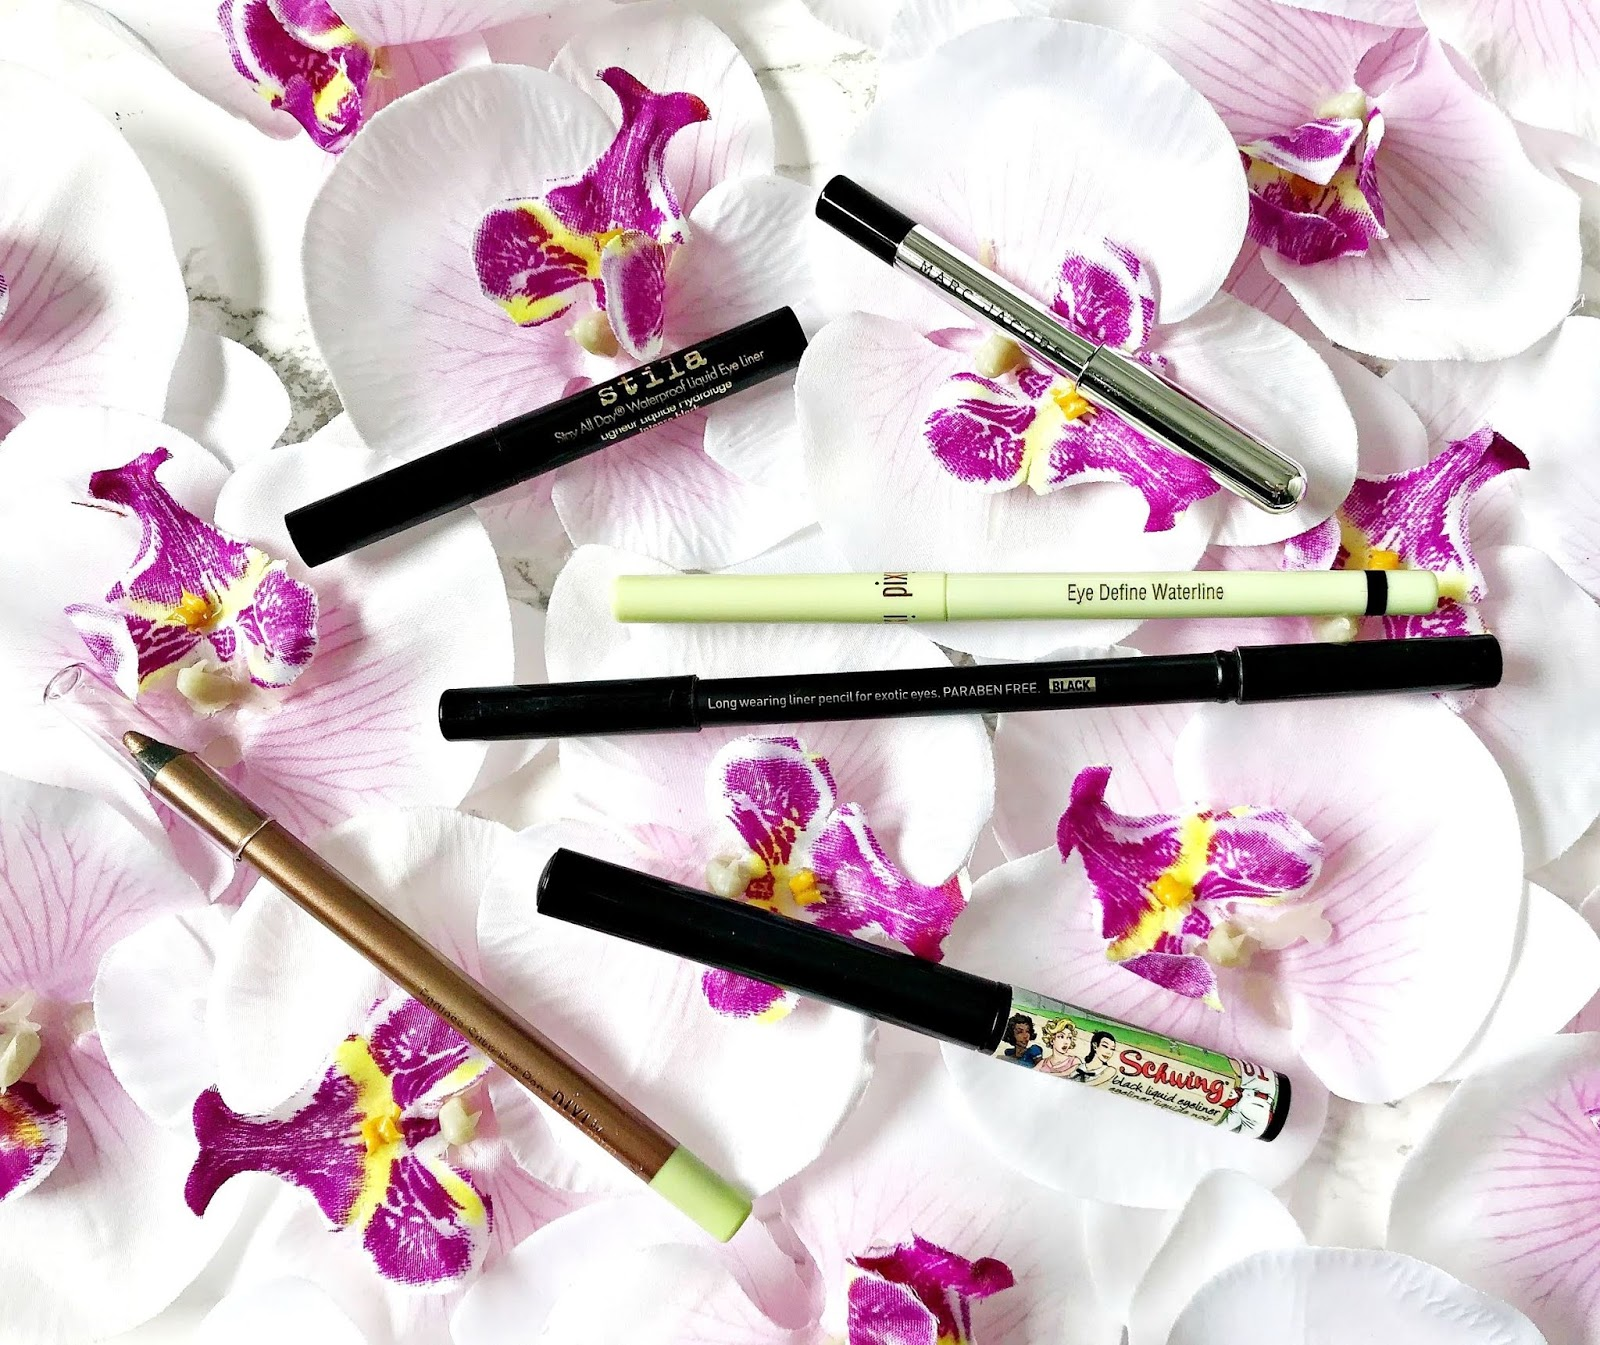 Long lasting eye liners, eye liner for watery eyes